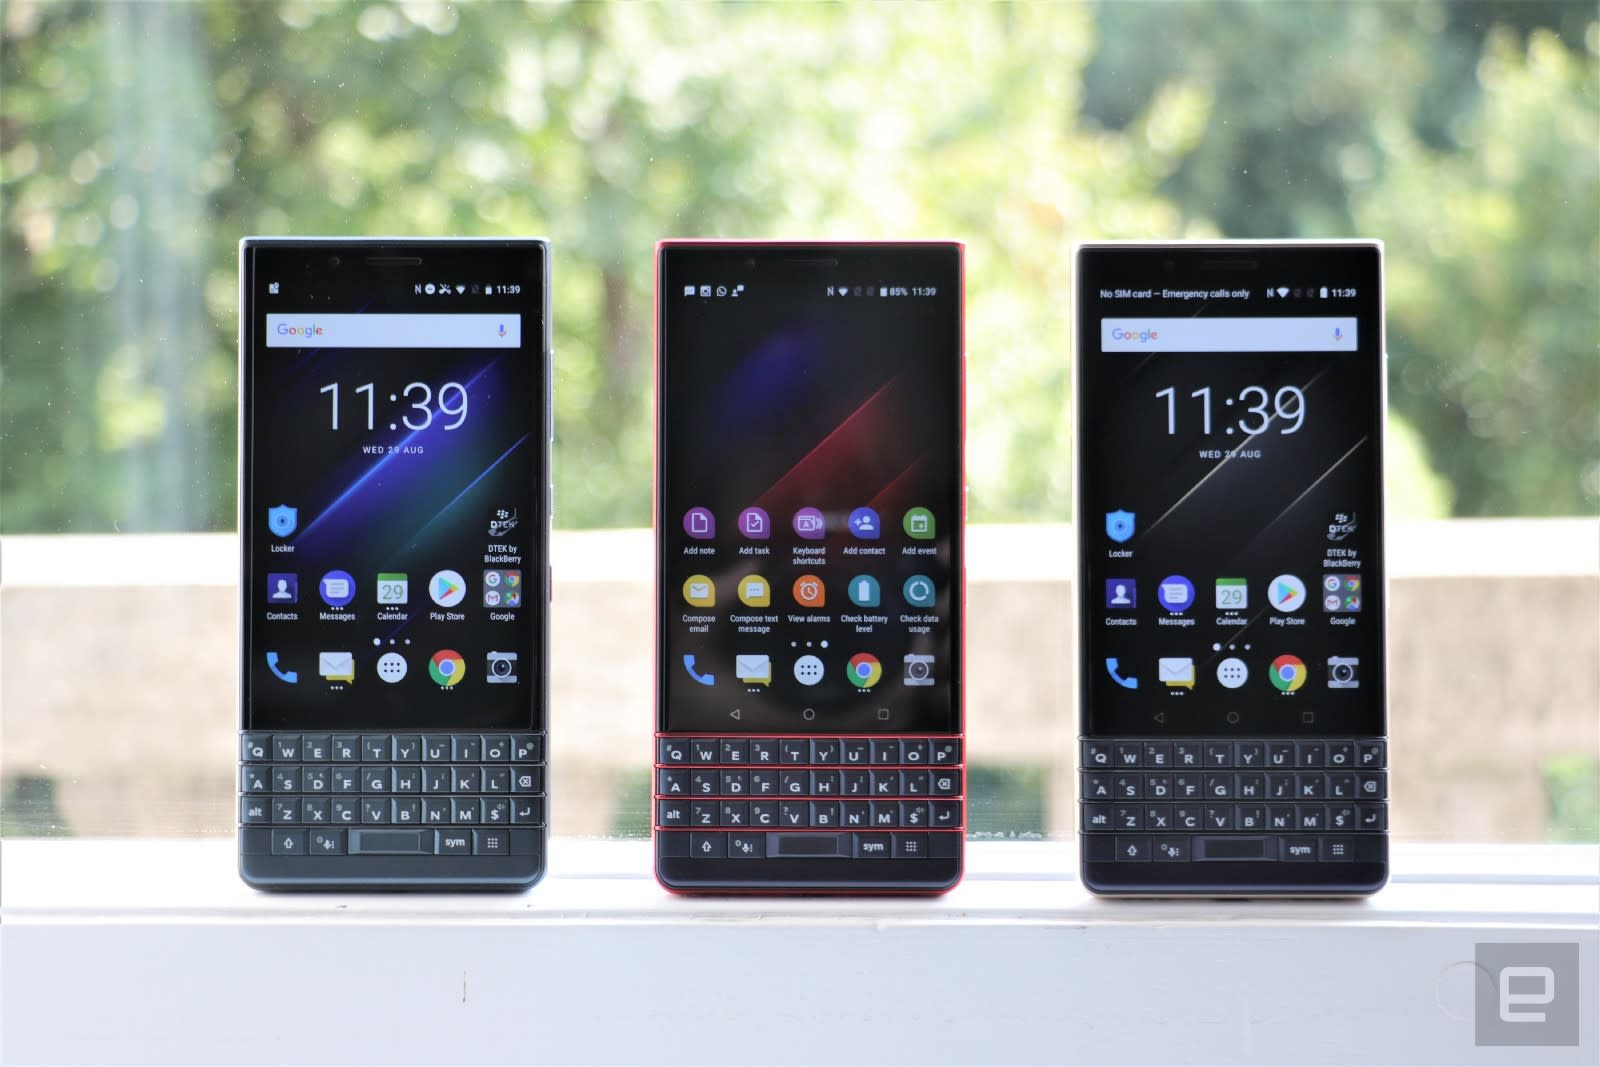 Blackberry's KEY2 LE is available for pre-order in the US